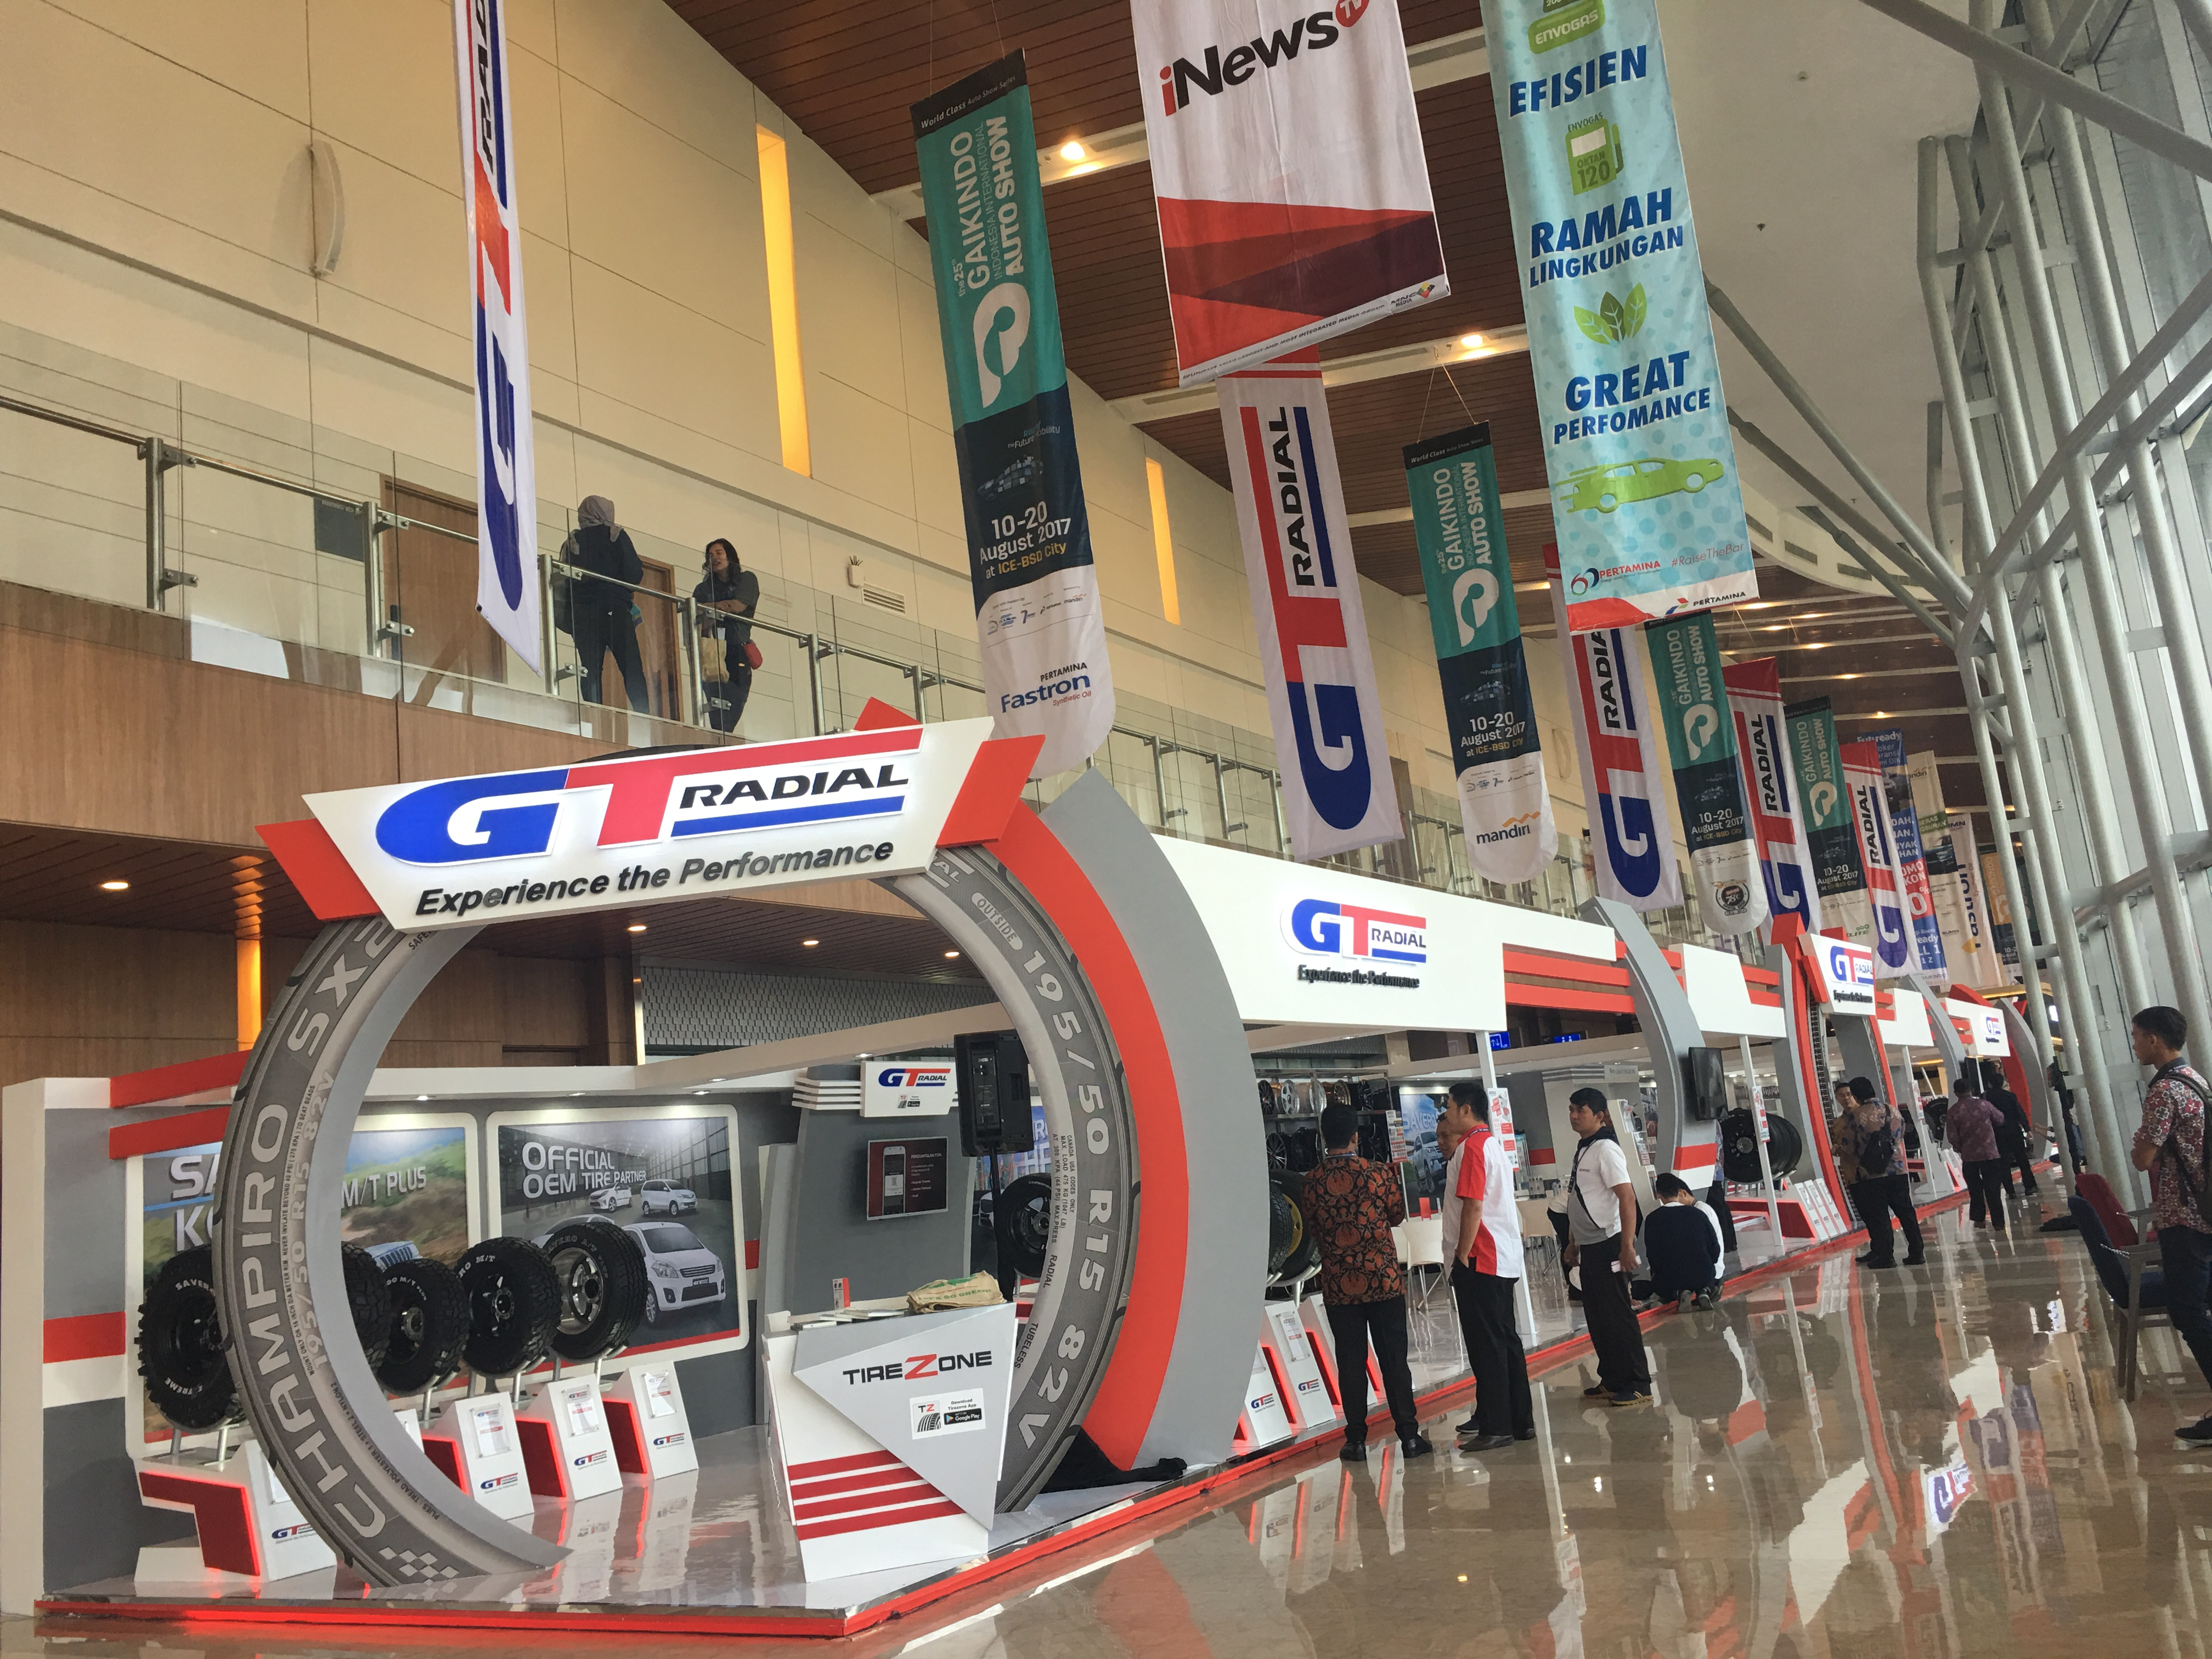 GIIAS 2017: #WELOVEGTRADIAL